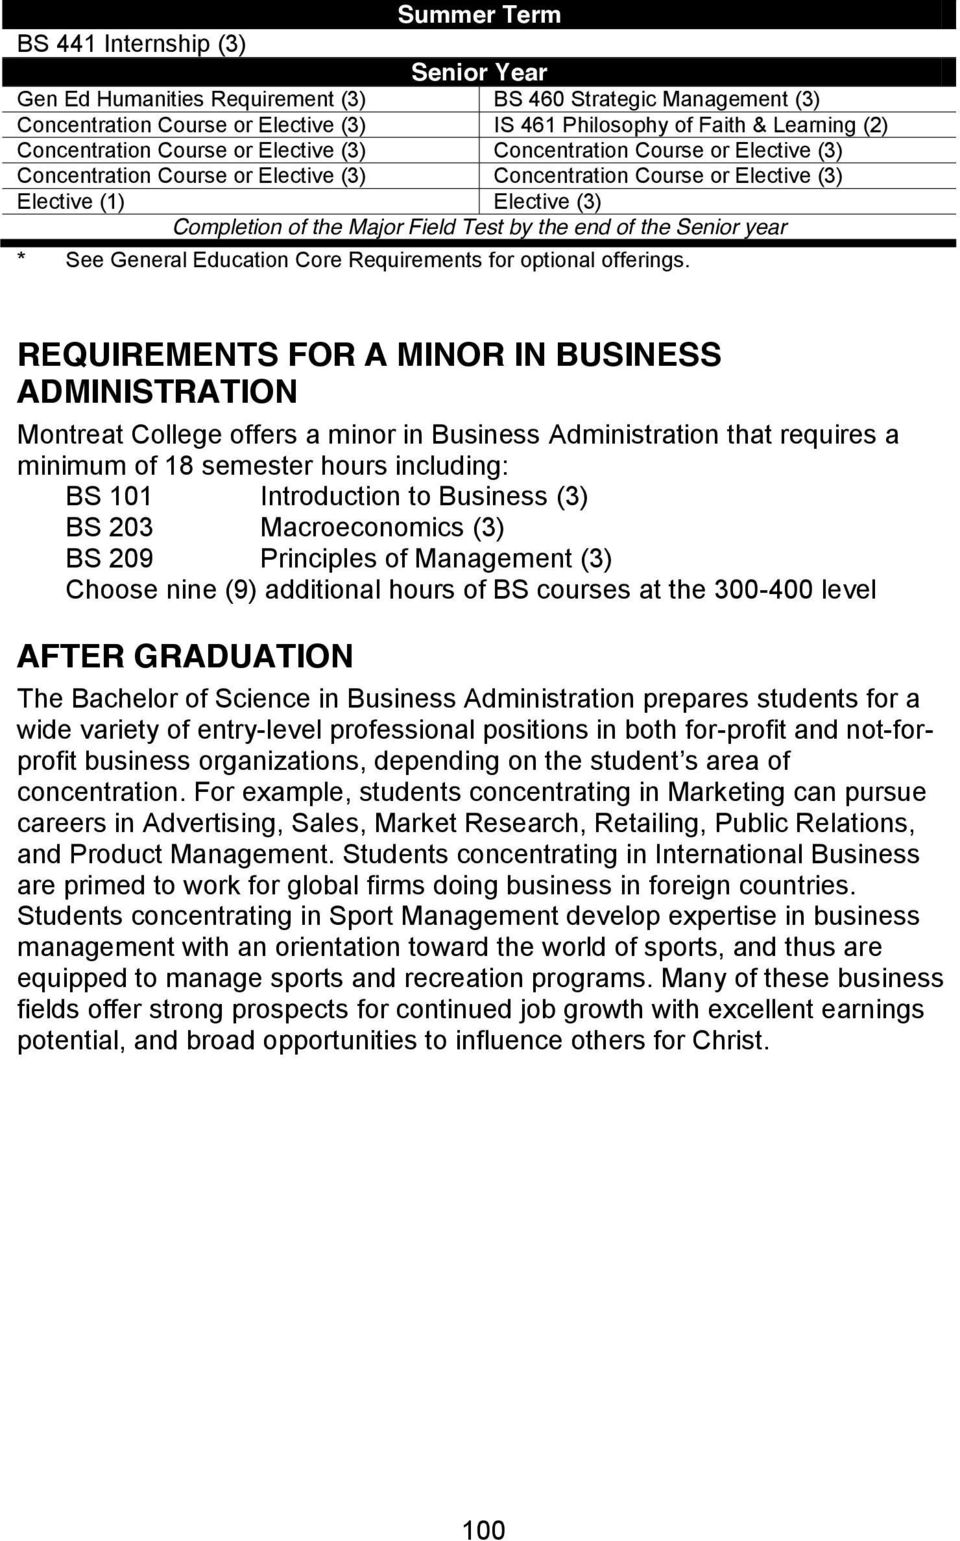 REQUIREMENTS FOR A MINOR IN BUSINESS ADMINISTRATION Montreat College offers a minor in Business Administration that requires a minimum of 18 semester hours including: BS 101 Introduction to Business